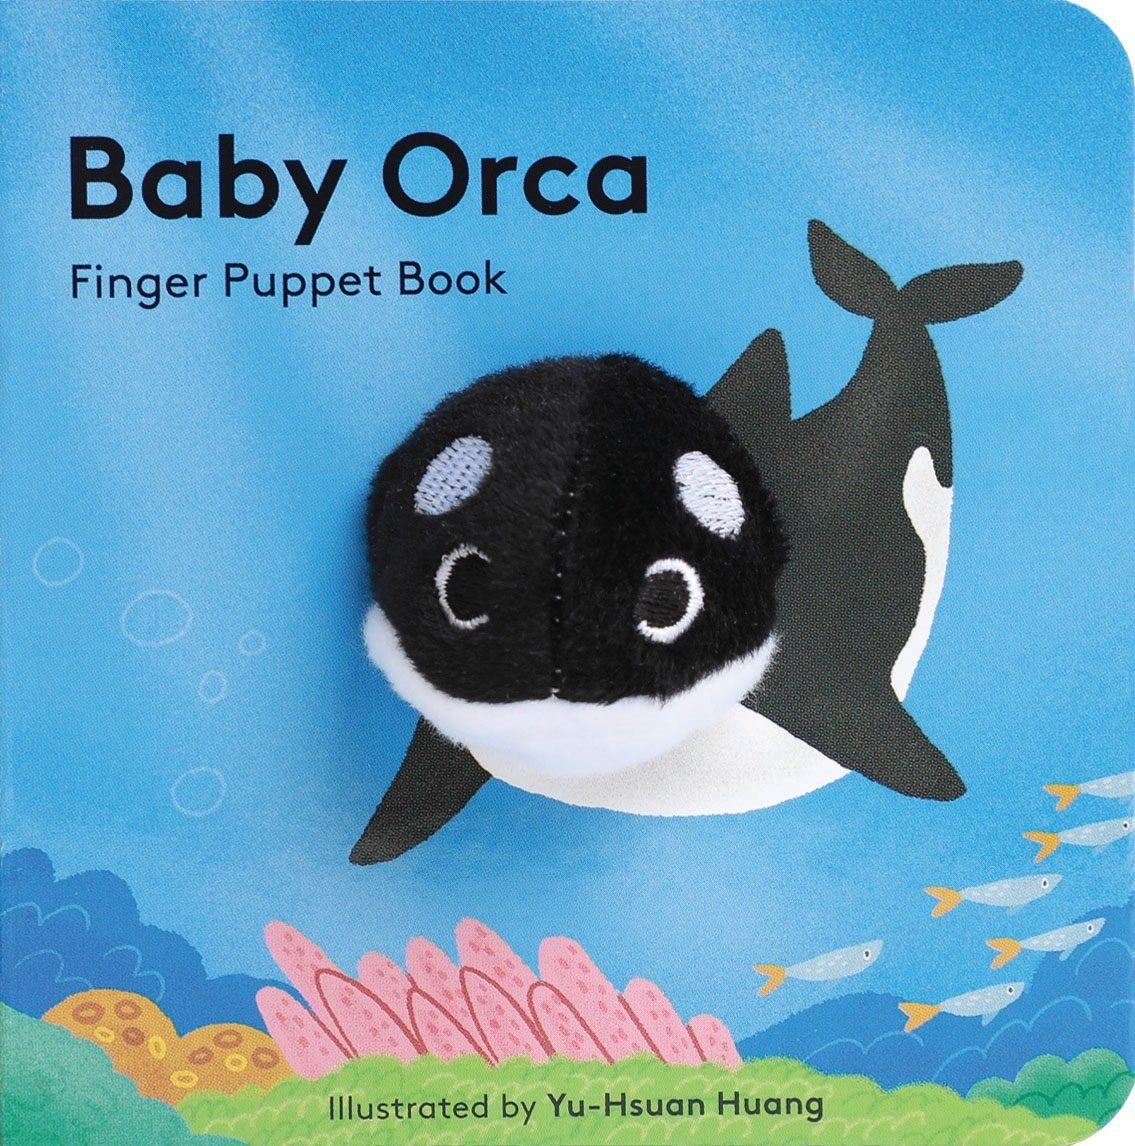 Baby Orca Finger Puppet Book - BouChic